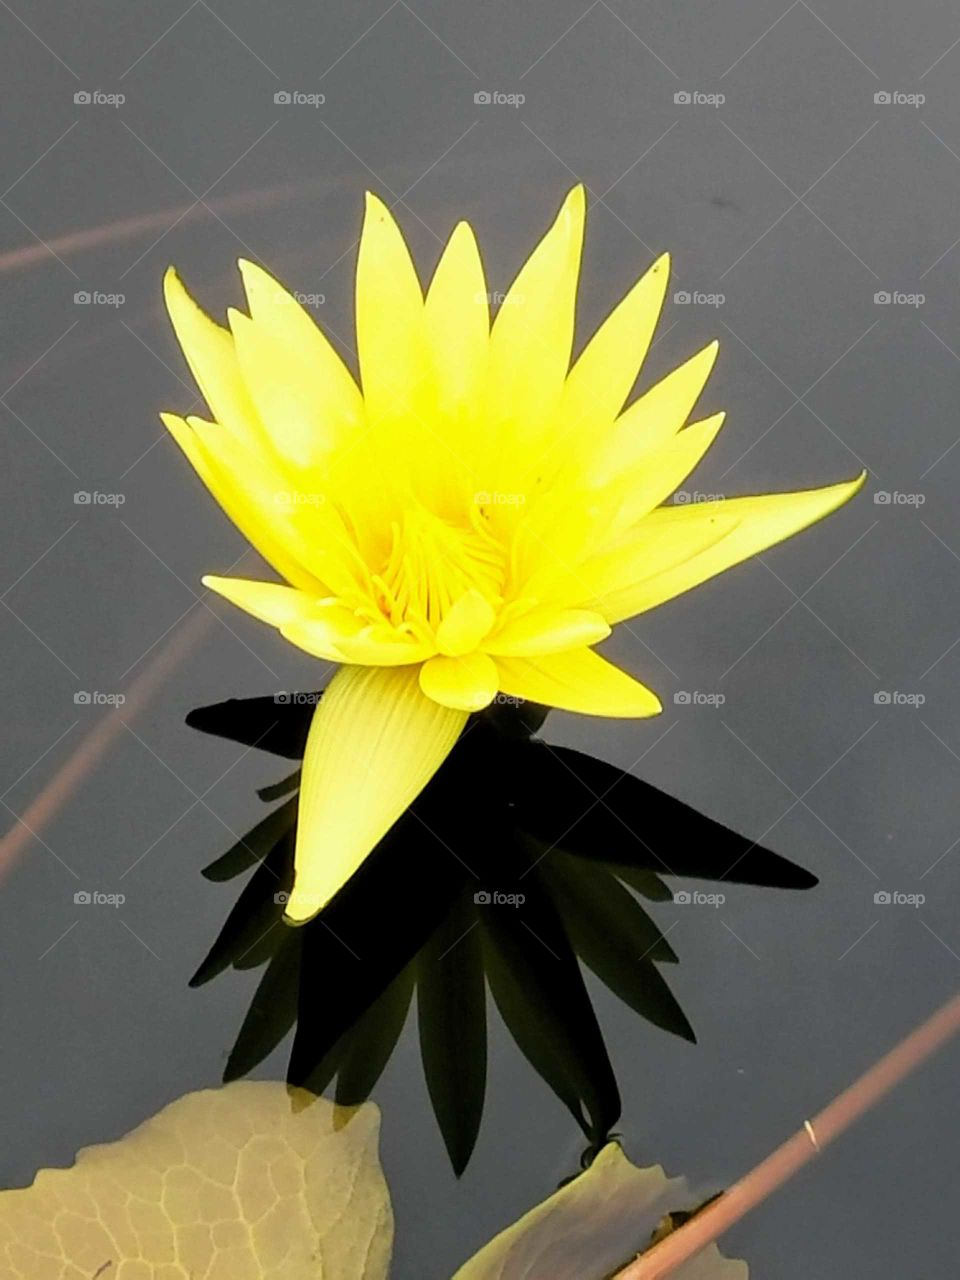 yellow water lily close-up with reflection